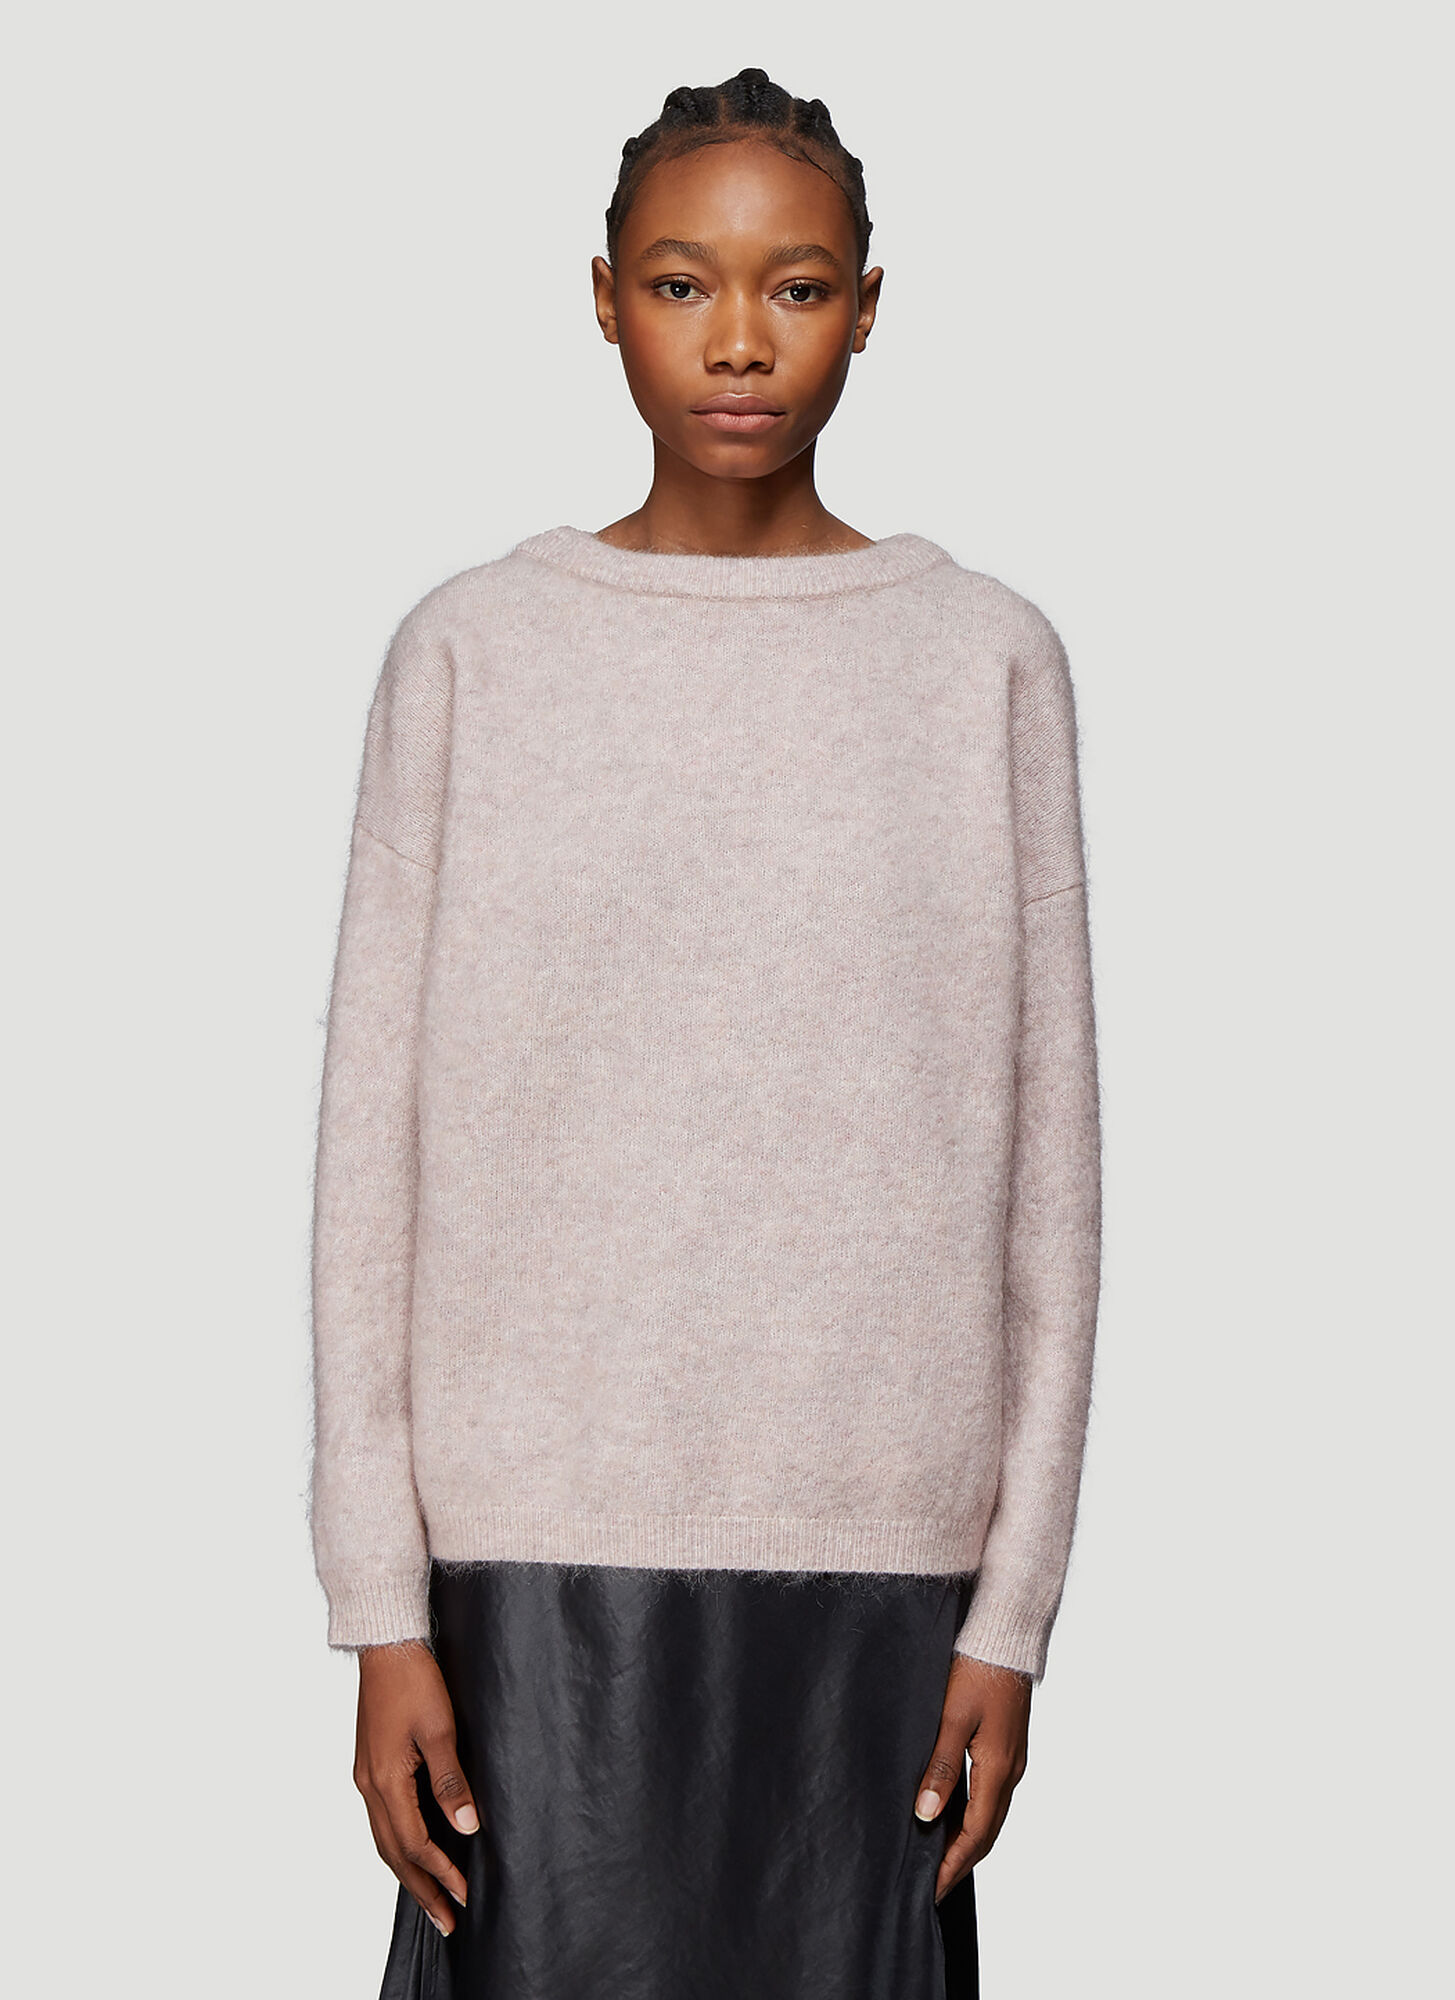 Acne Studios Loose Knit Crew Neck Sweater in Neutral